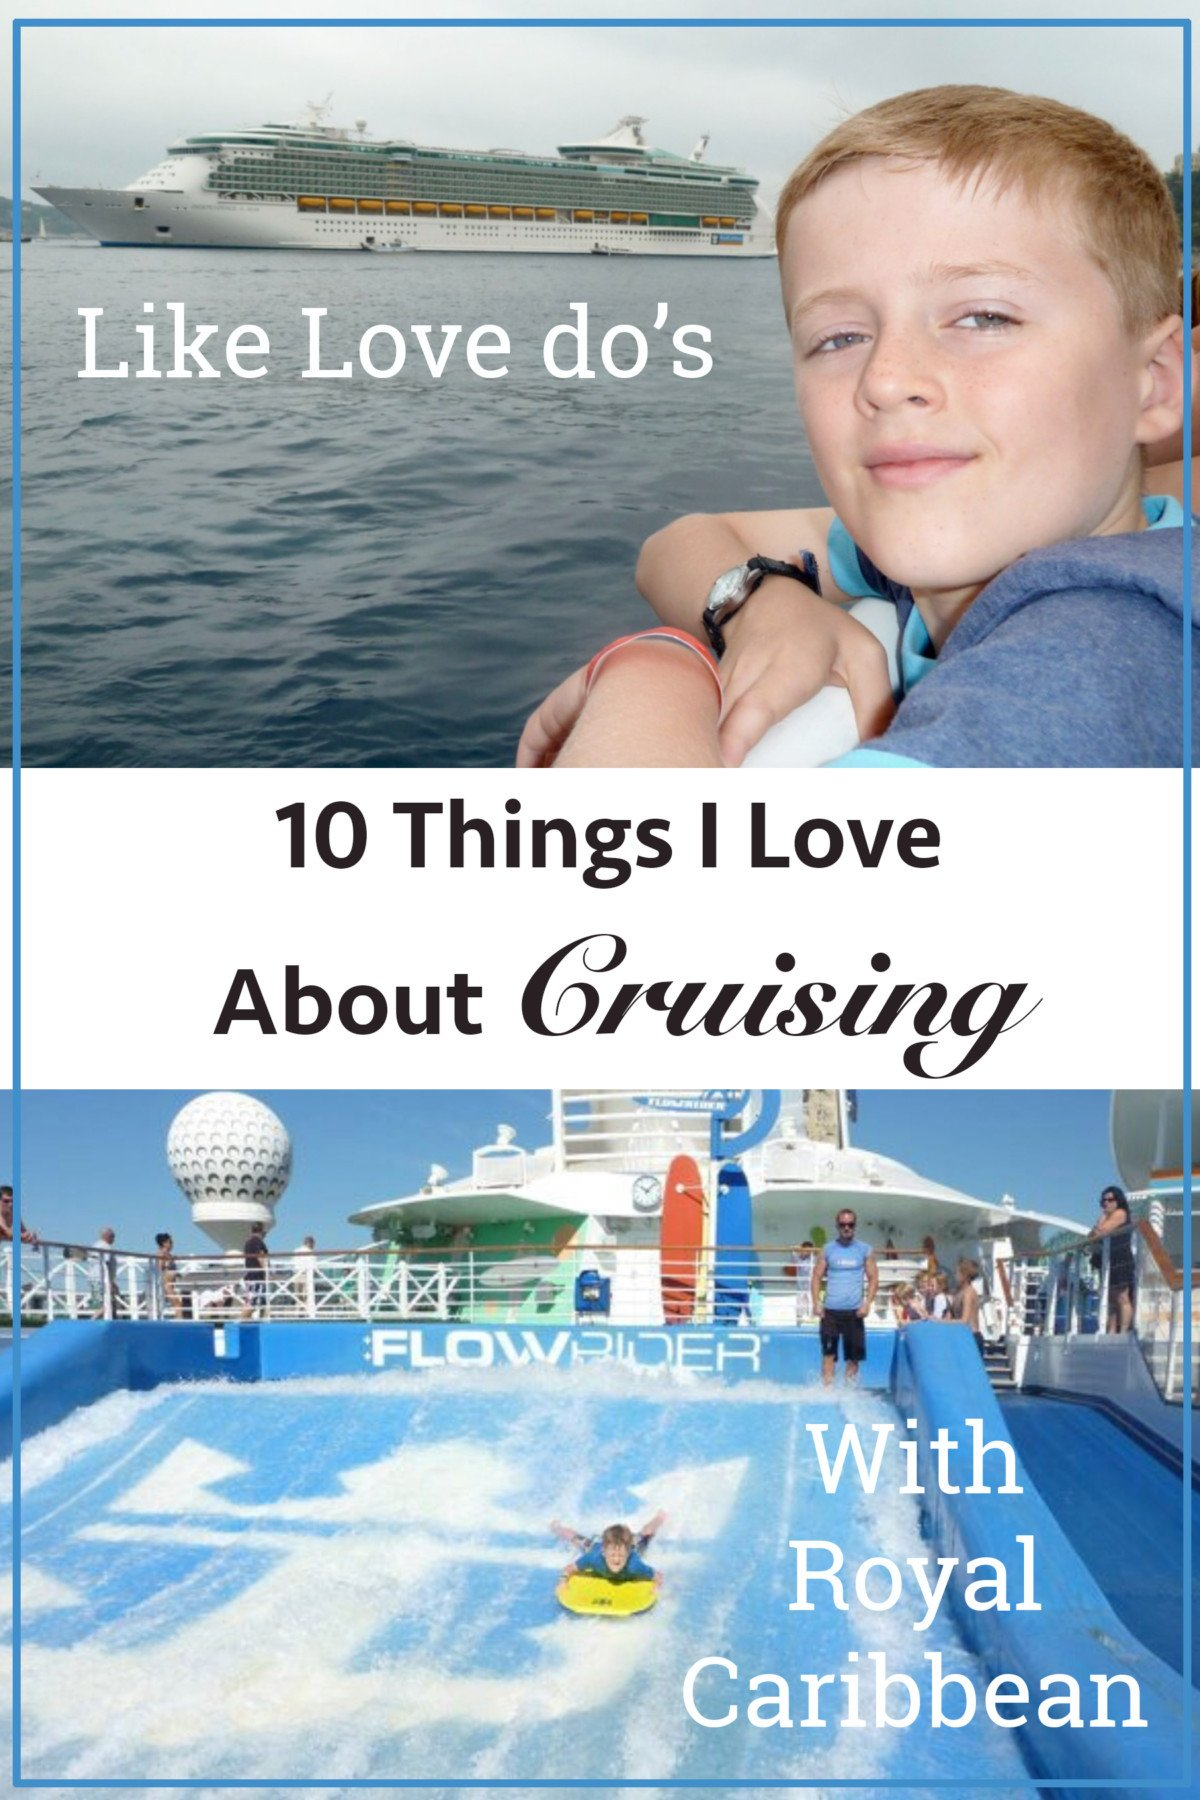 10 things I love about cruising with Royal Caribbean